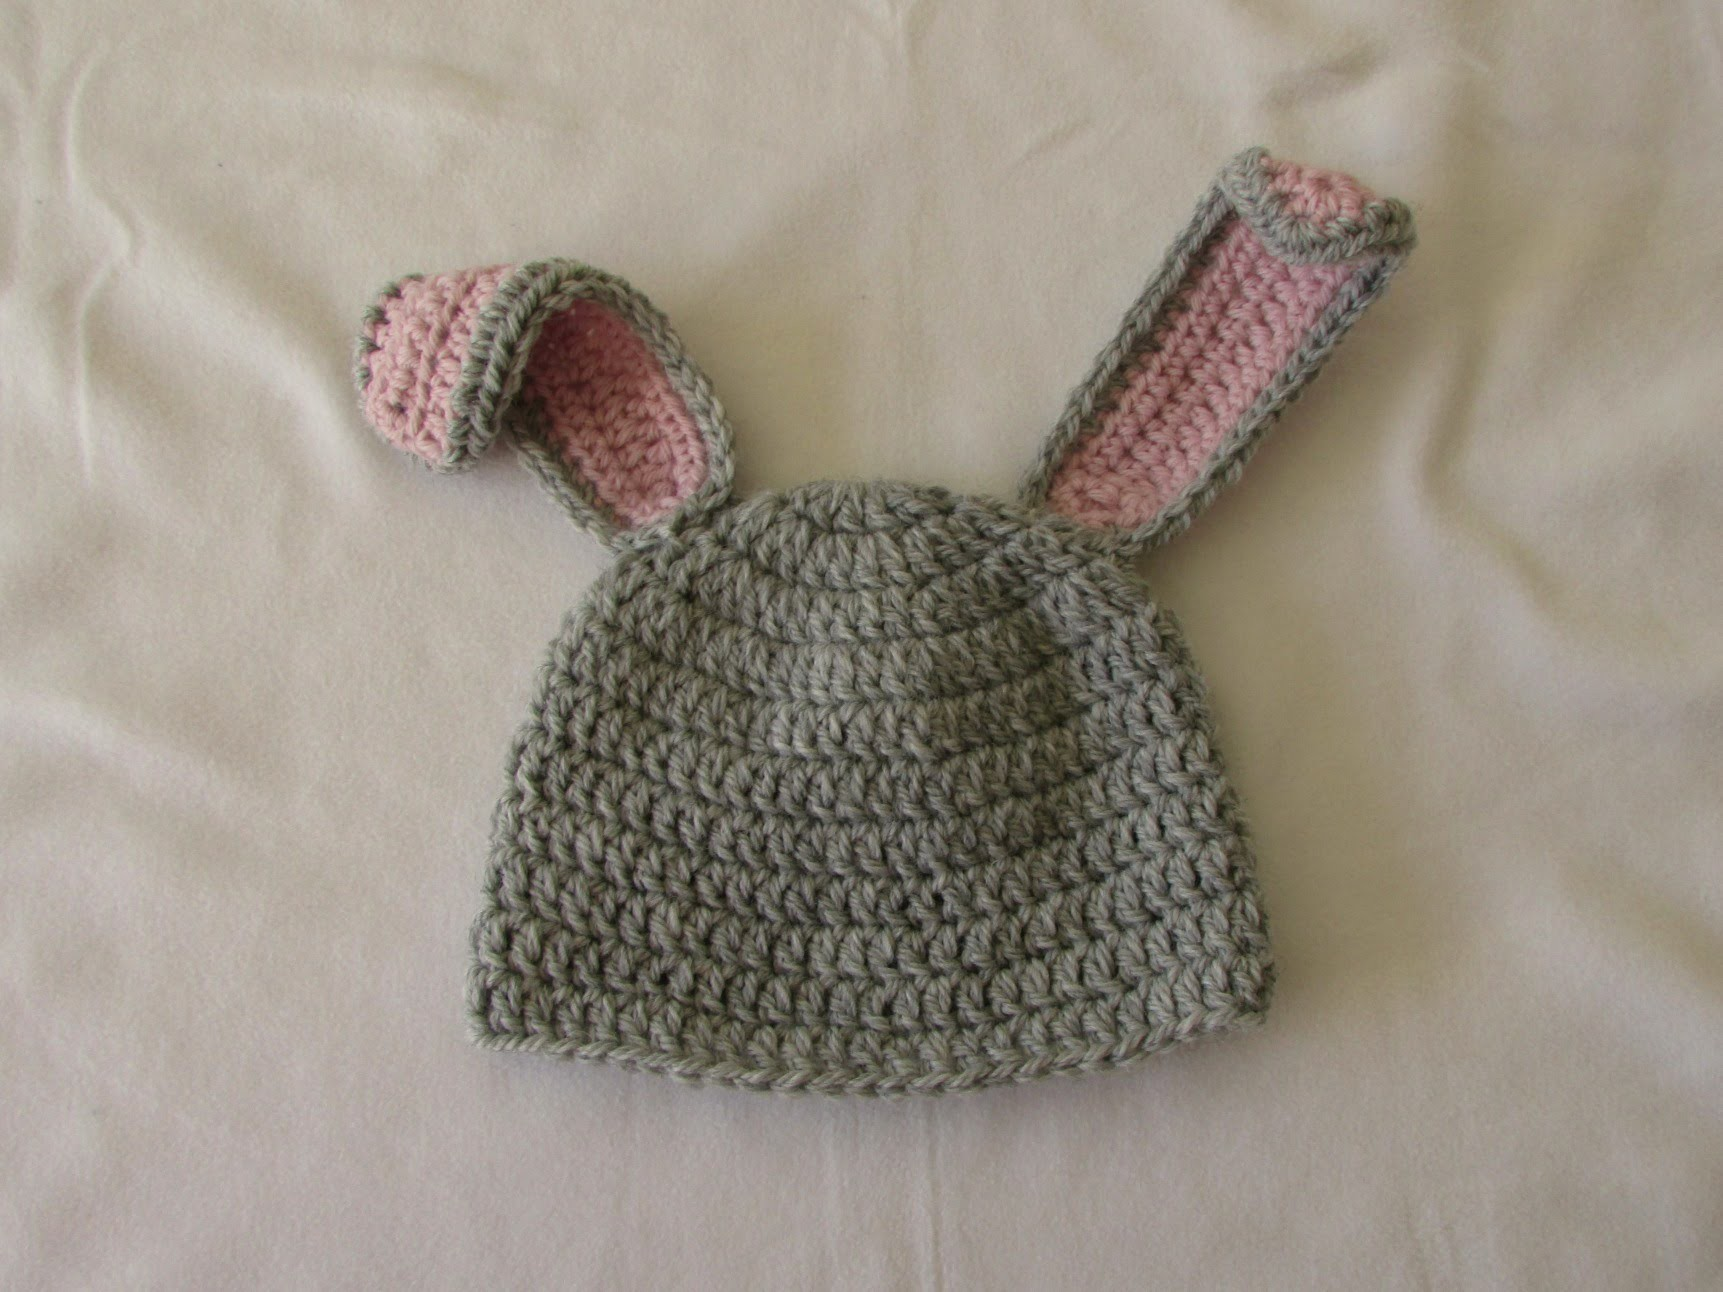 VERY EASY crochet baby. child's bunny hat tutorial - Part 1